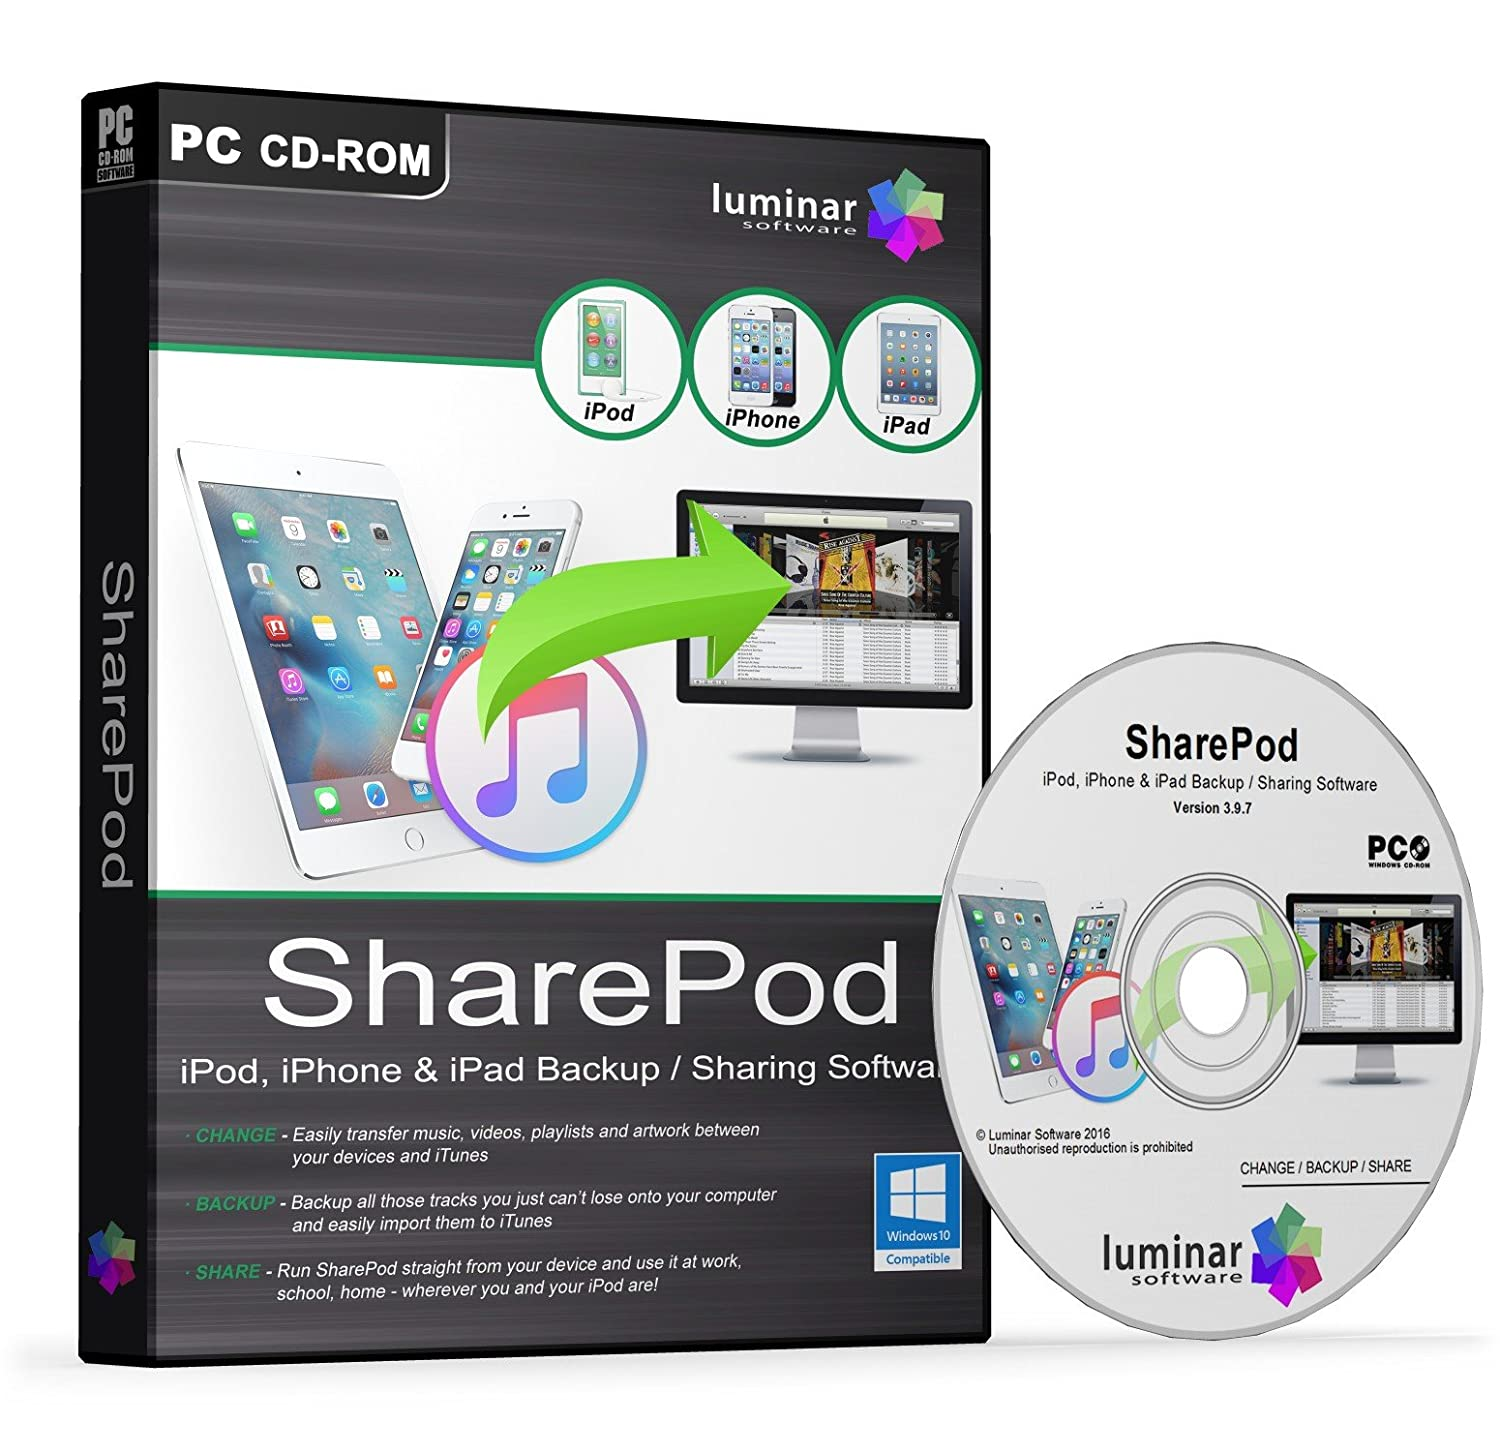 SharePod - iPod, iPhone & iPad Backup / Recovery / Sharing / Transfer  Software (PC) - BOXED AS SHOWN